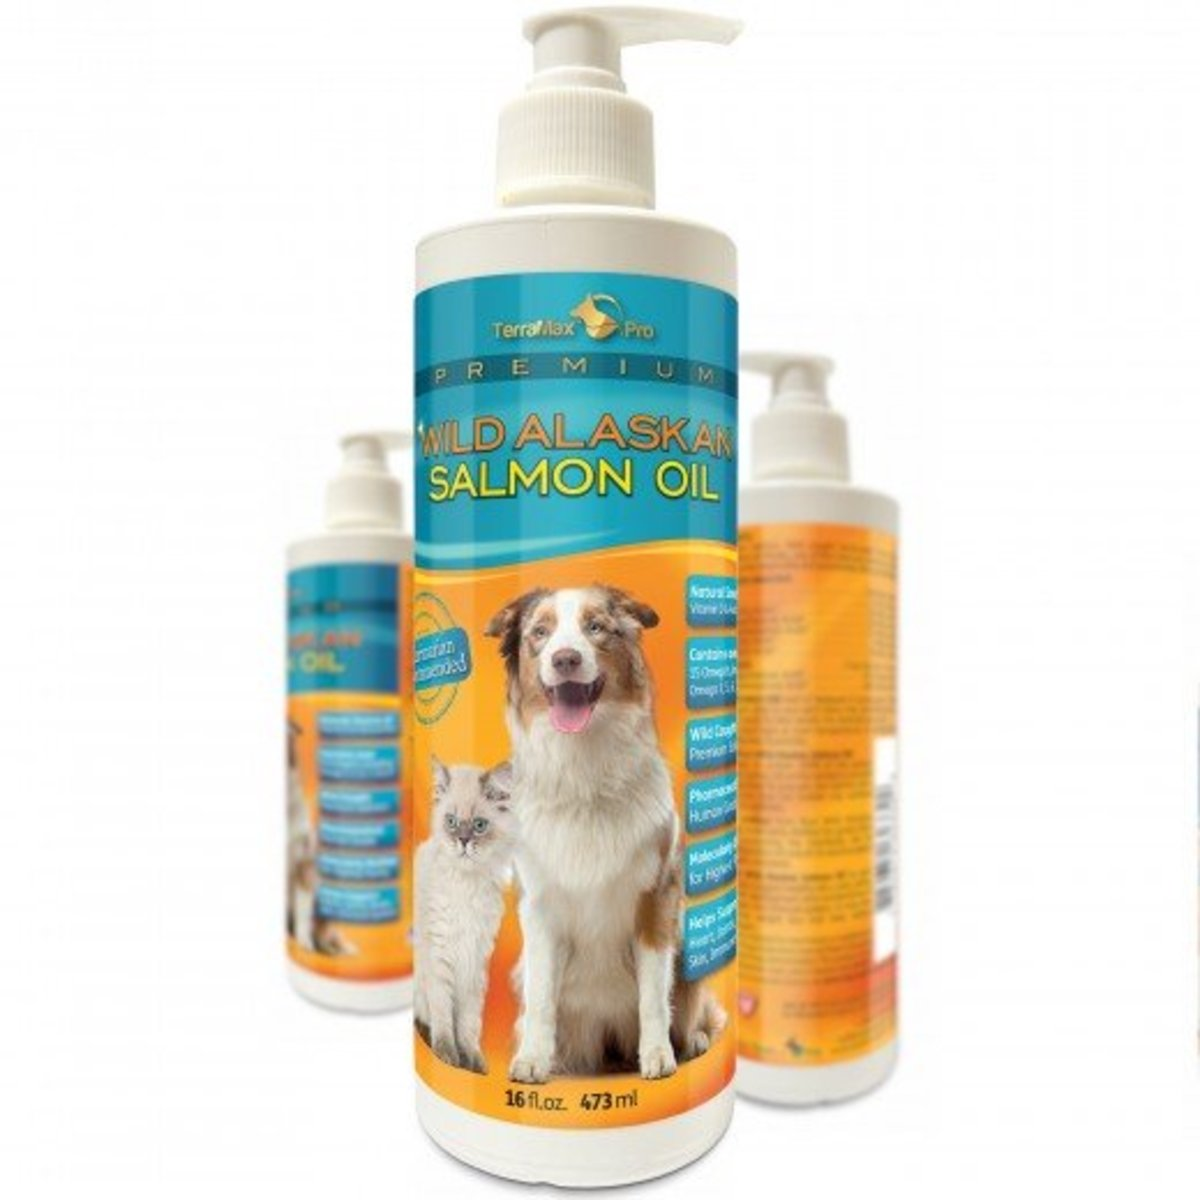 my-review-of-premium-wild-alaskan-salmon-oil-for-dogs-and-cats